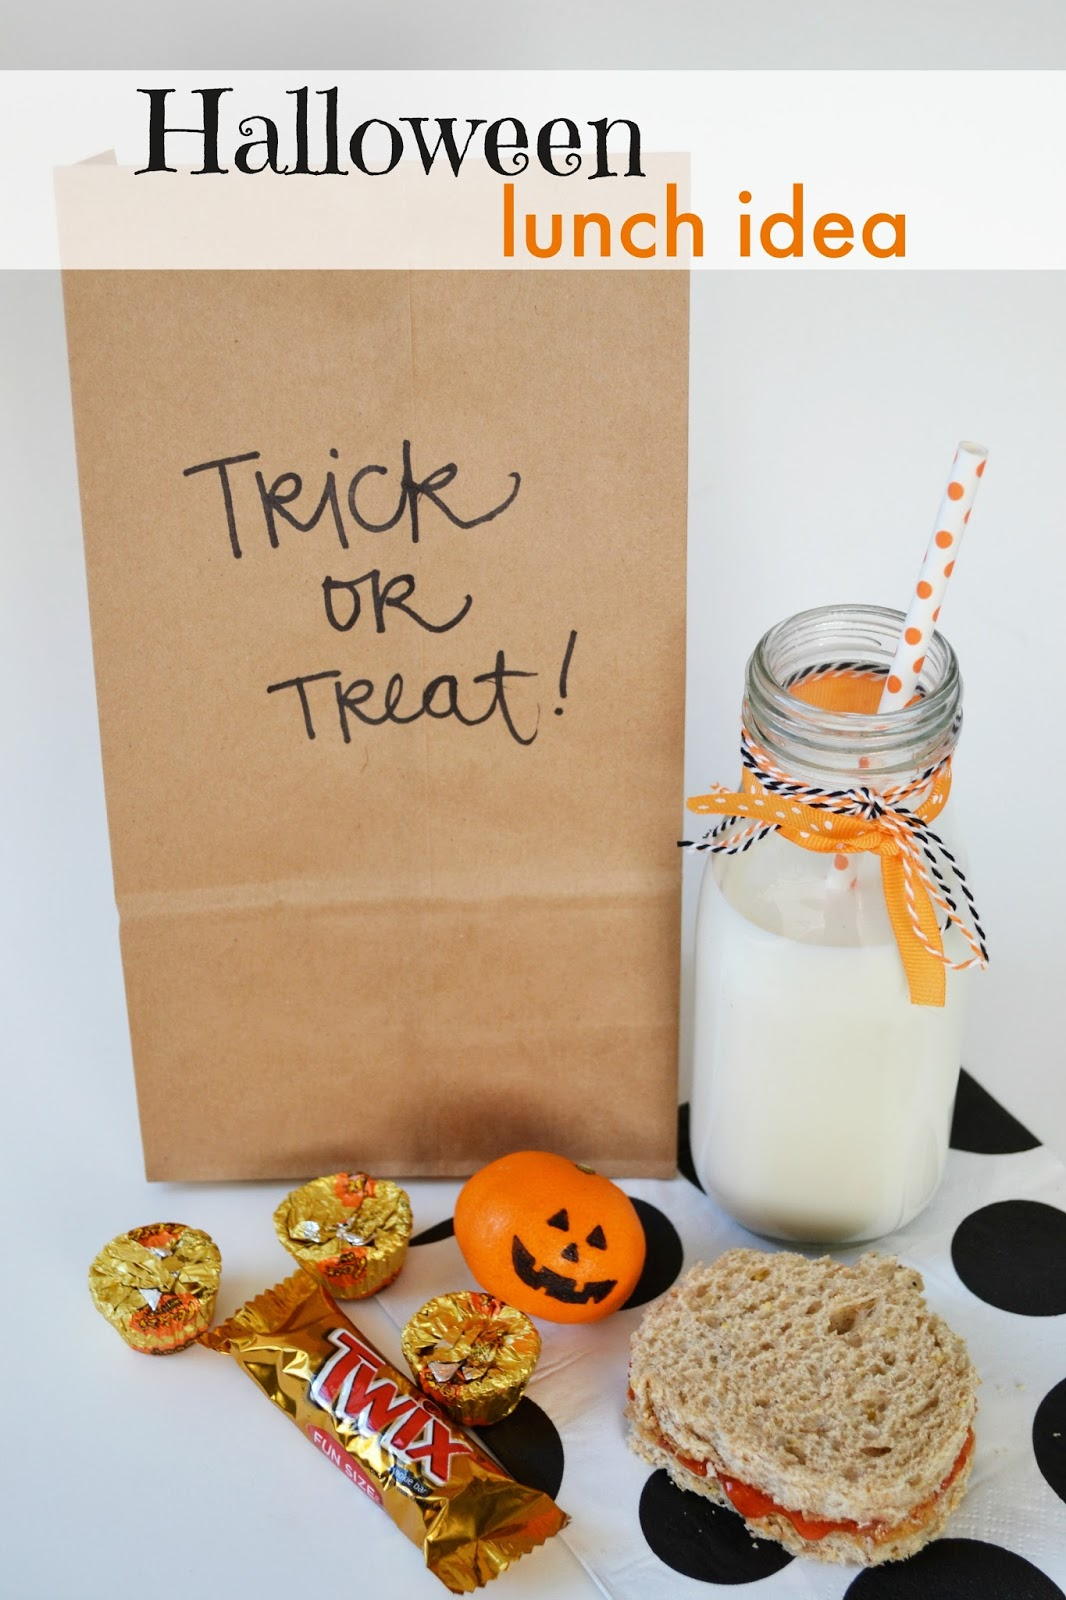 Peachy Keen Blog: Halloween Lunch Ideas - Food is always more fun when it's holiday shaped!